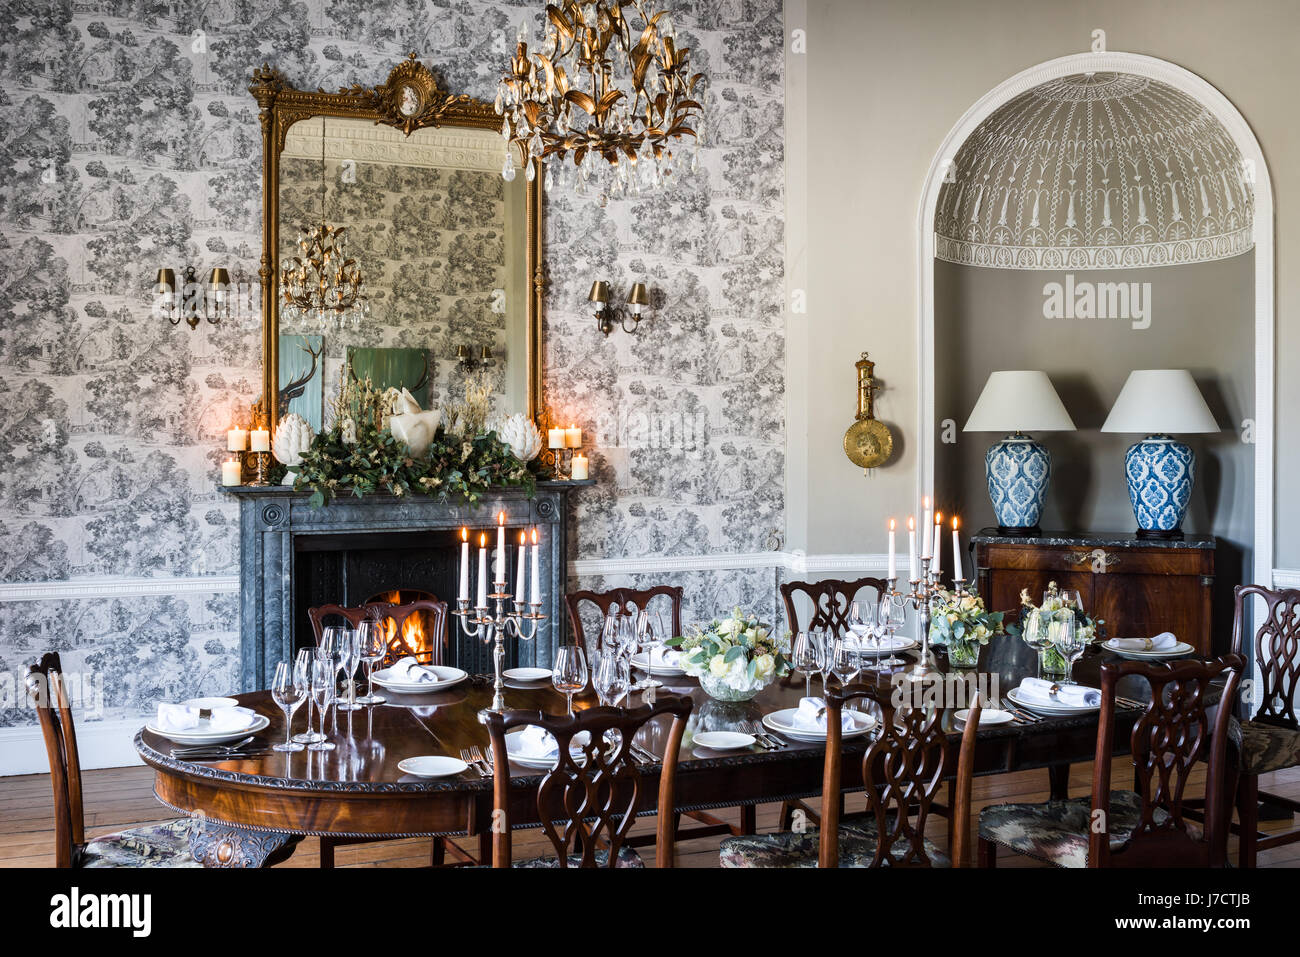 Dining room with glass and gilt chandelier from jfm interiors above dining room with glass and gilt chandelier from jfm interiors above dining table laid for a formal meal a large gilt mirror is above the mantelpiece aloadofball Image collections